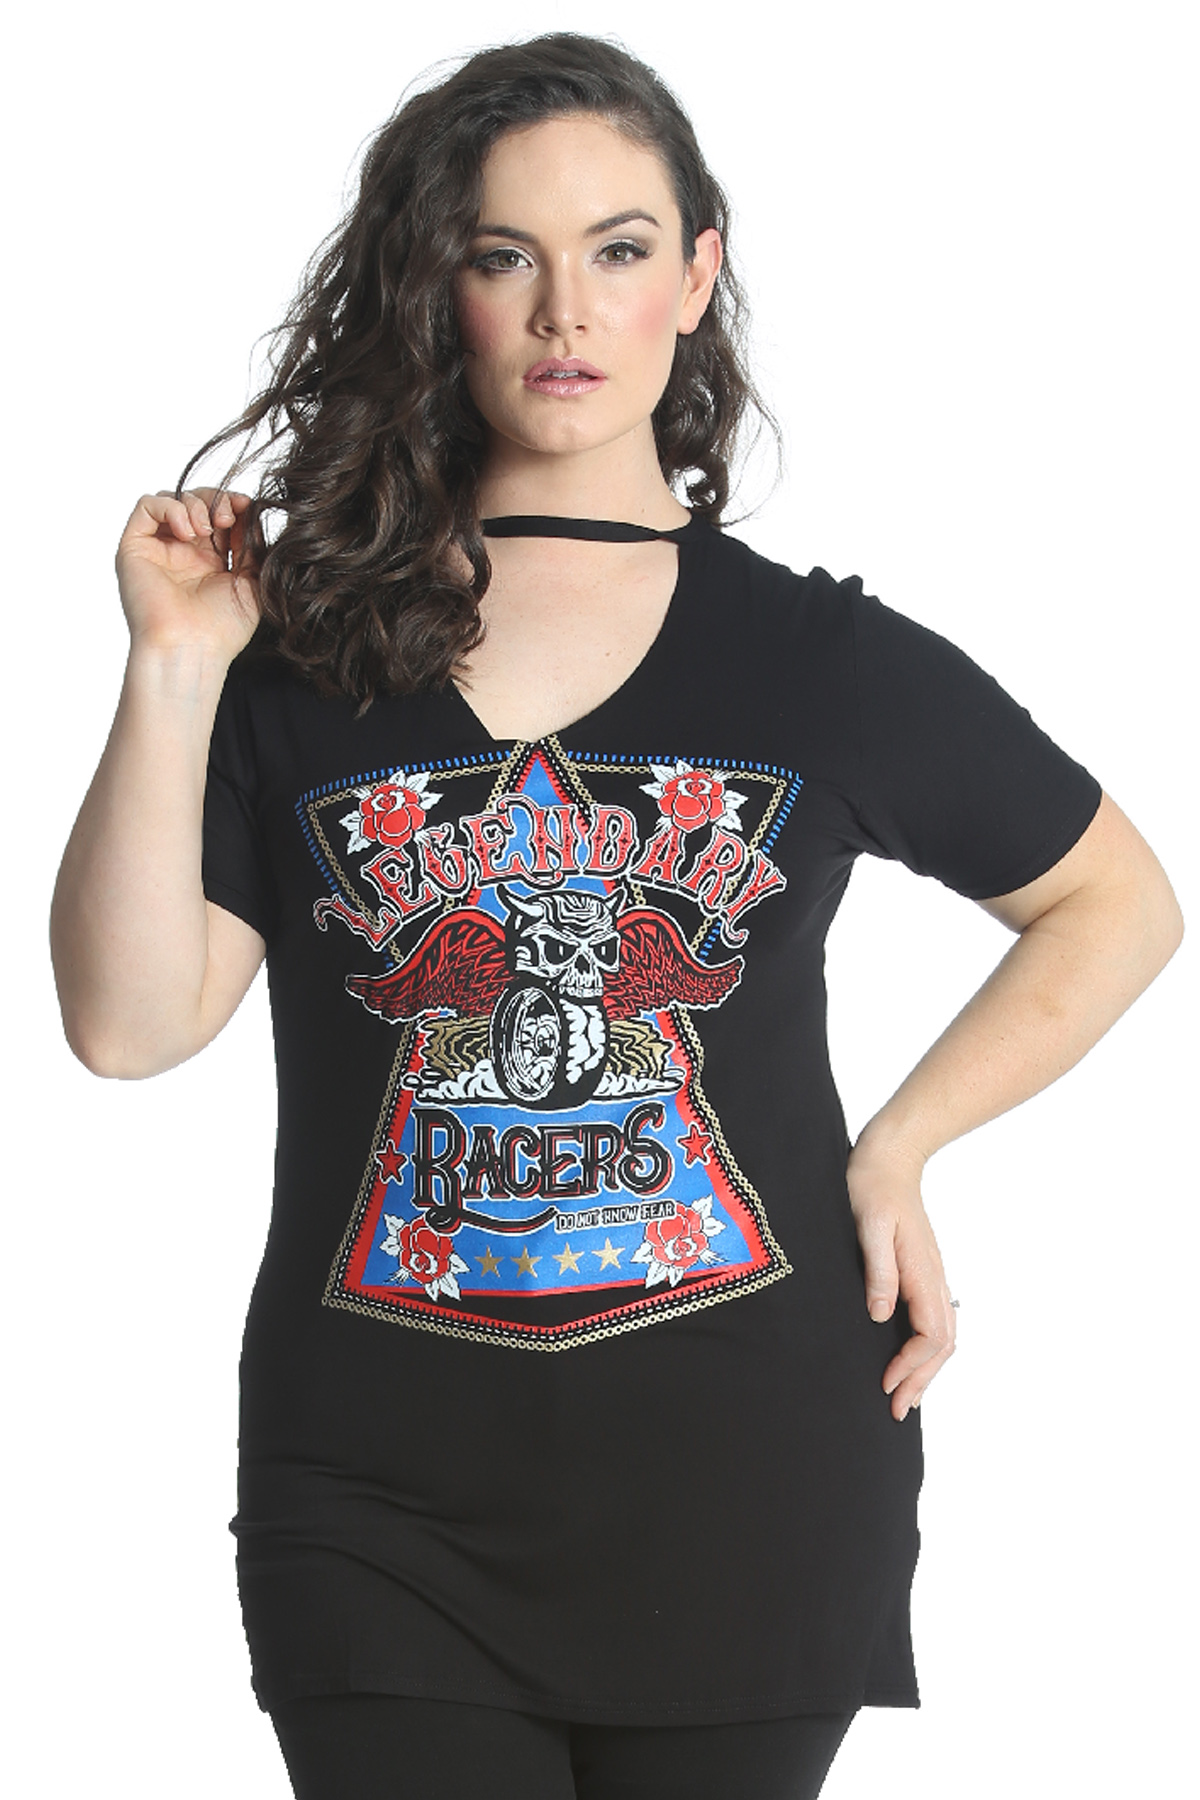 Rebel Girl® American Rebel® offers quality Womens and Mens Motorcycle Clothing, Apparel, Motorcycle Patches, Jackets, T-Shirts, Accessories & Leather.